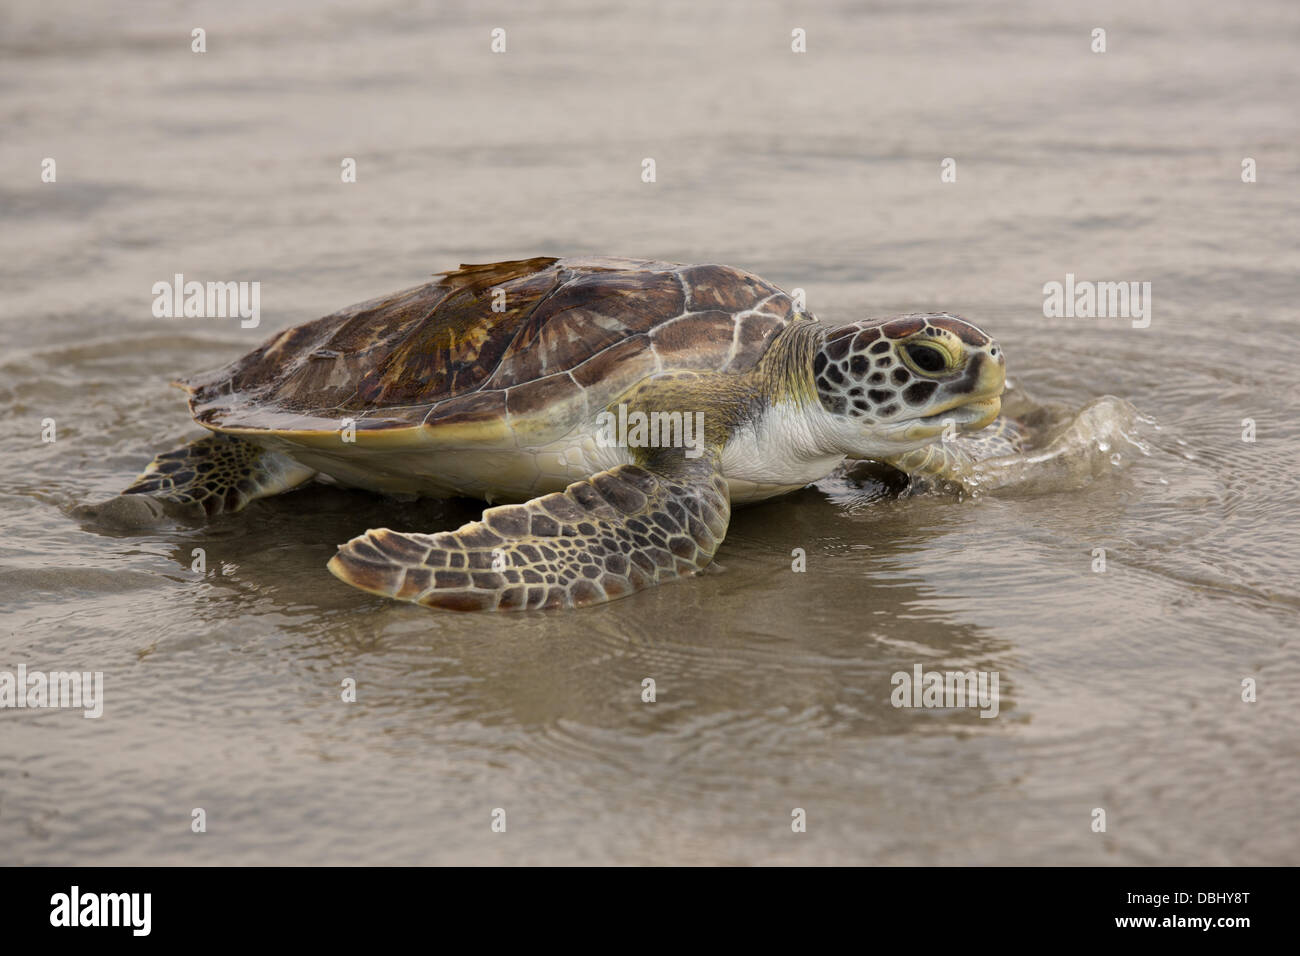 A green sea turtle rescued by the South Carolina Aquarium Turtle Rescue Hospital is released in the Atlantic Ocean - Stock Image